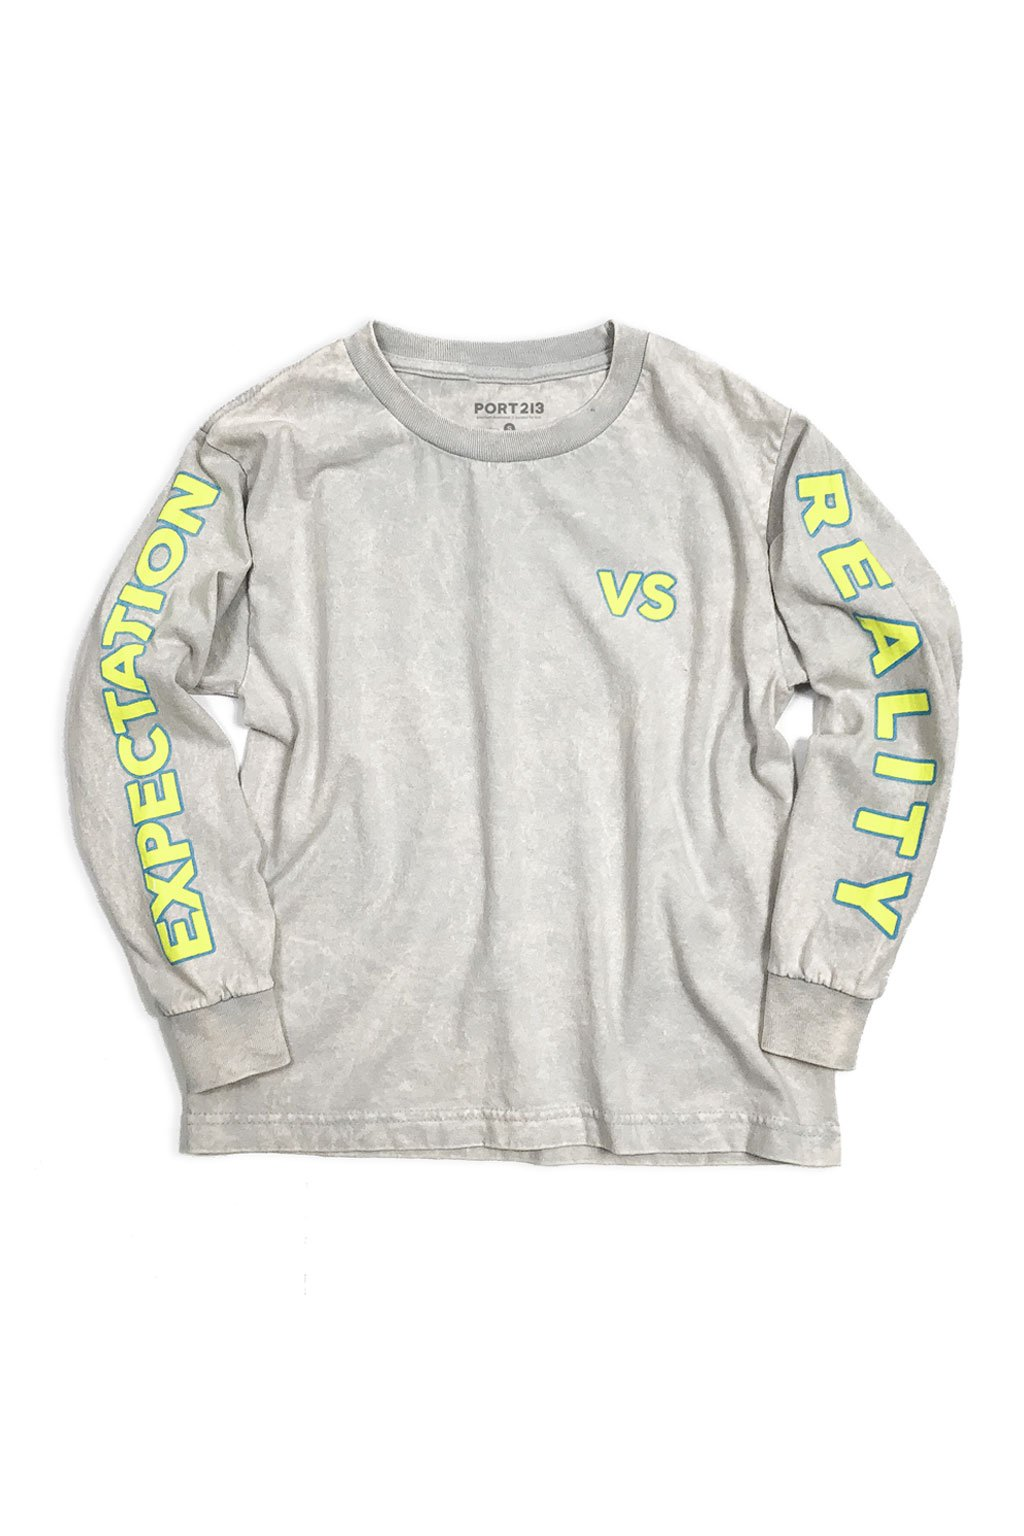 Grey Expectation VS Reality Long Sleeve T-shirt - Port 213.com